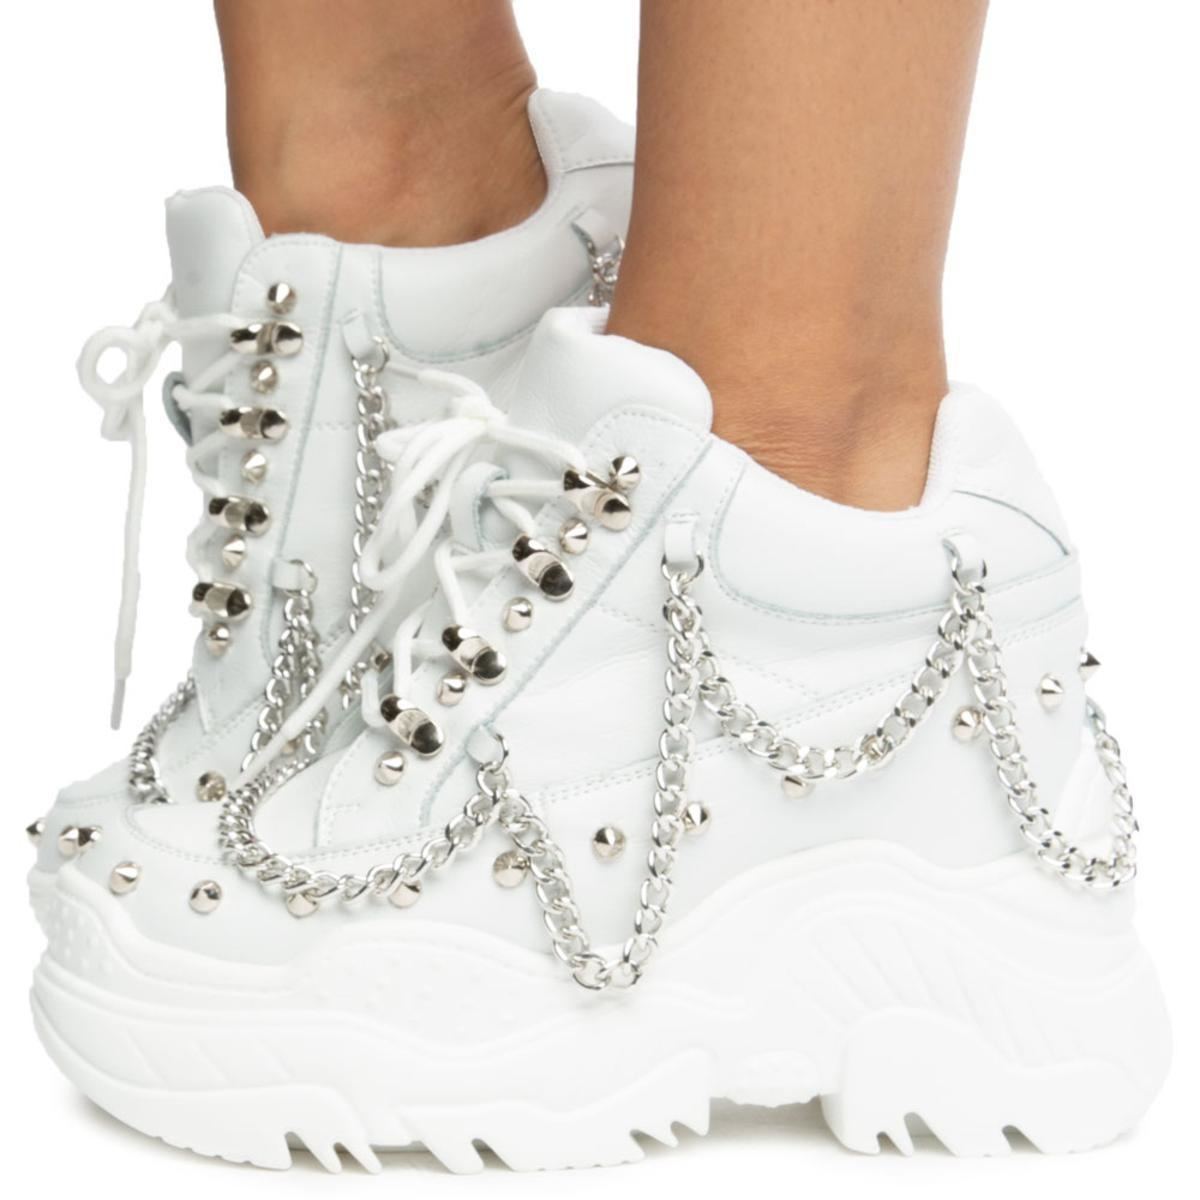 Image of Space Candy Platform Sneakers with Studs